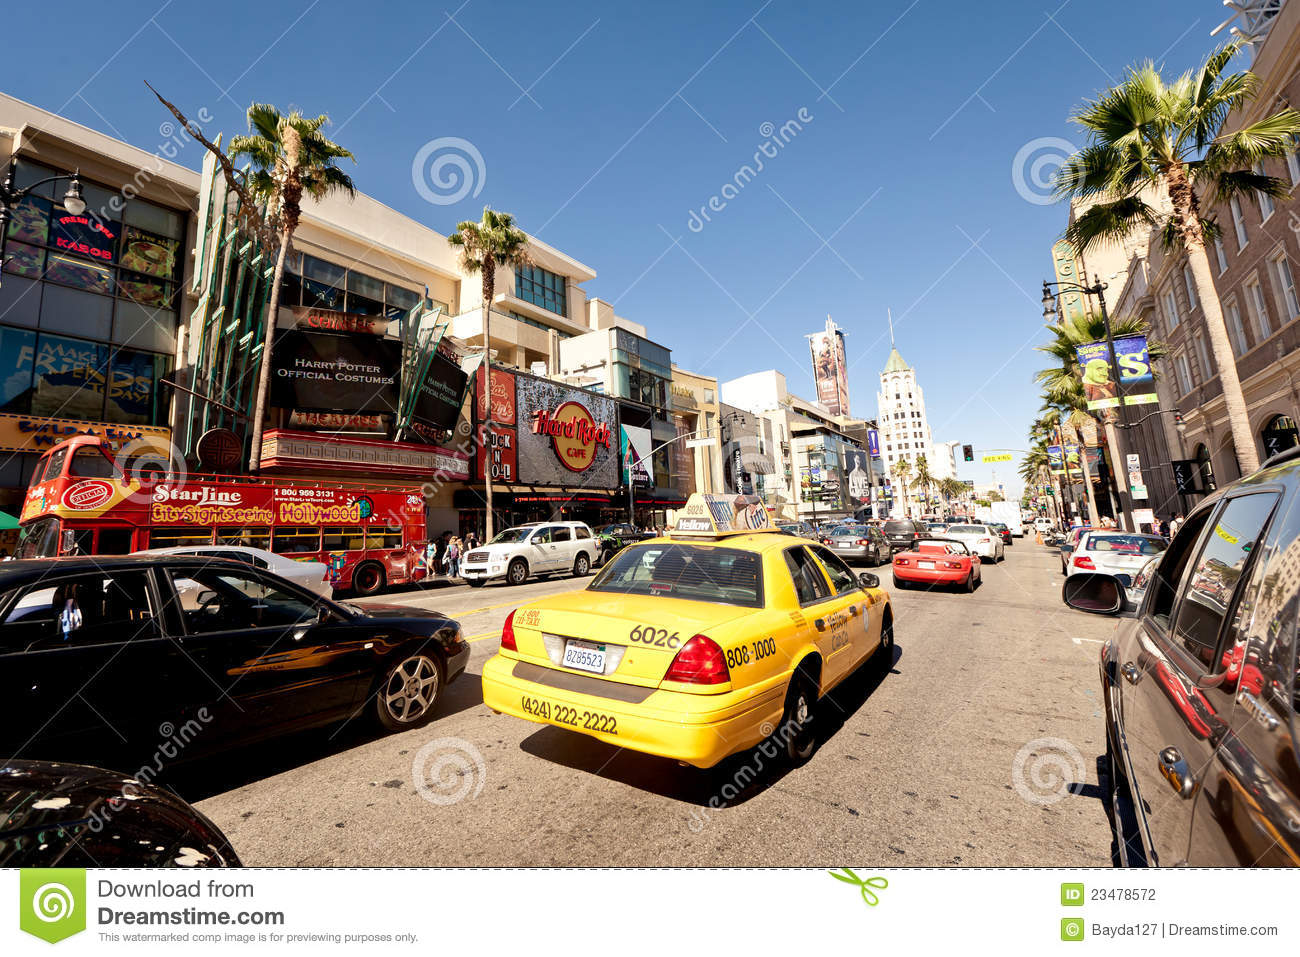 View of Hollywood Boulevard in Los Angeles